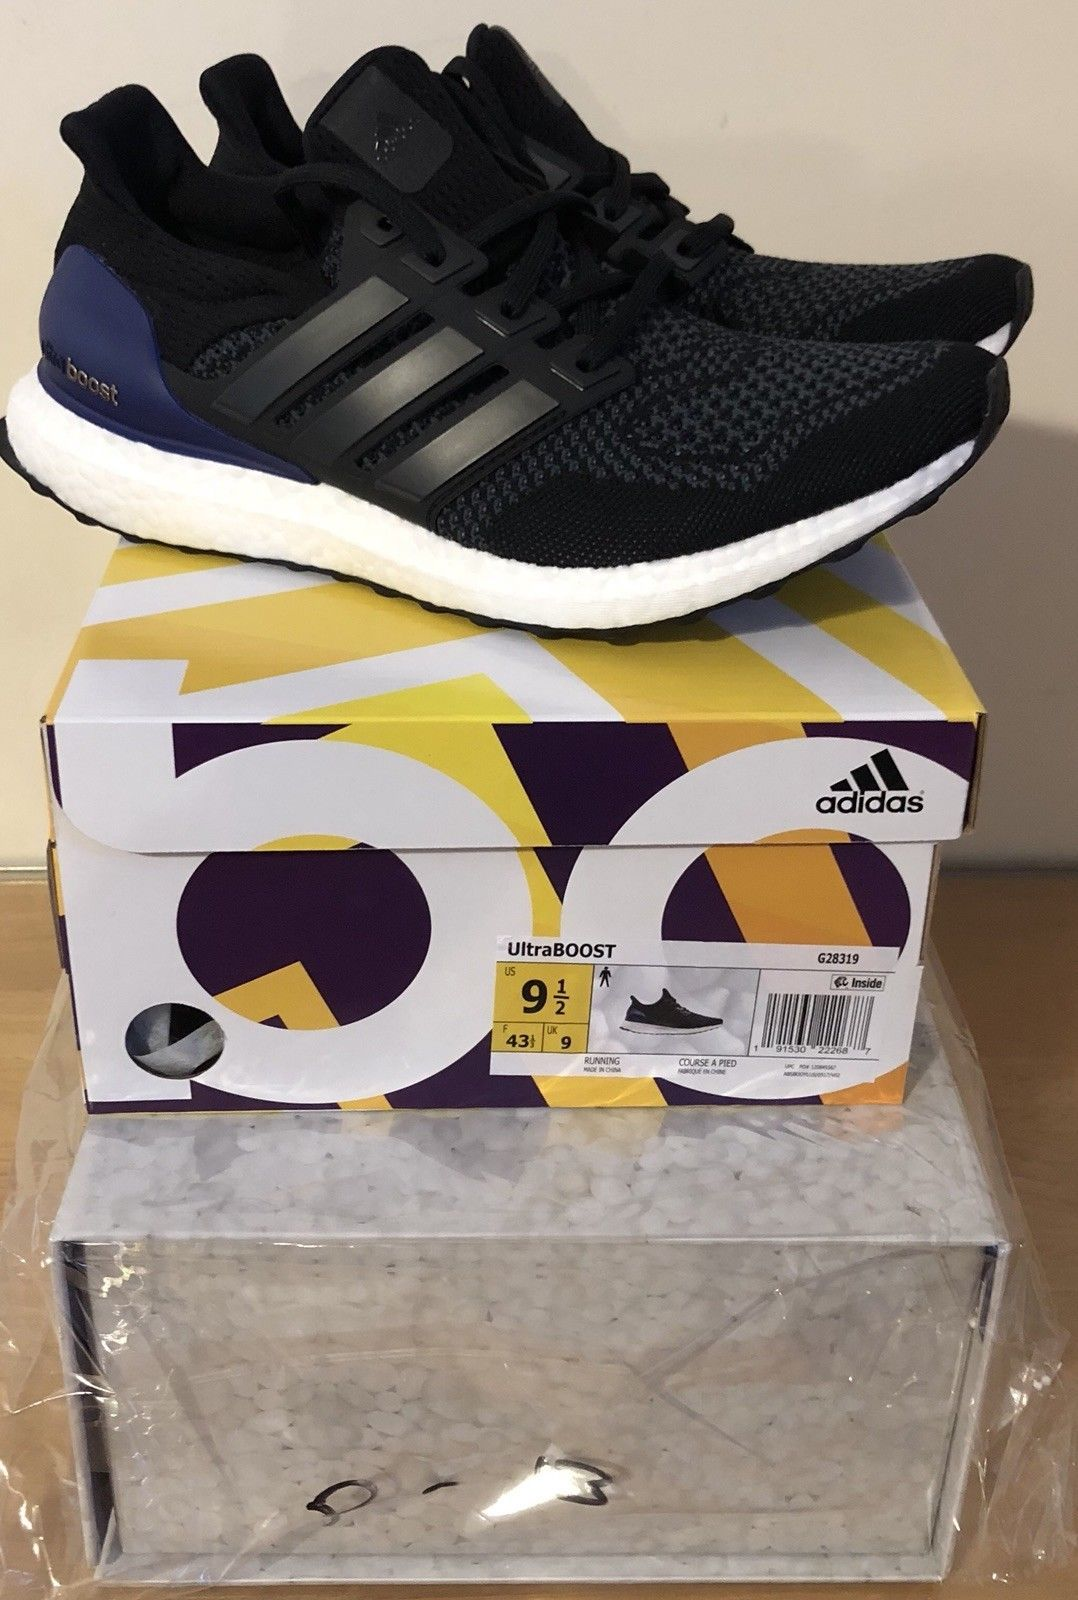 85d1f63c32290 2018 Adidas Ultra Boost OG Black Purple Size US Mens 9.5 G28319 WITH  SPECIAL BOX